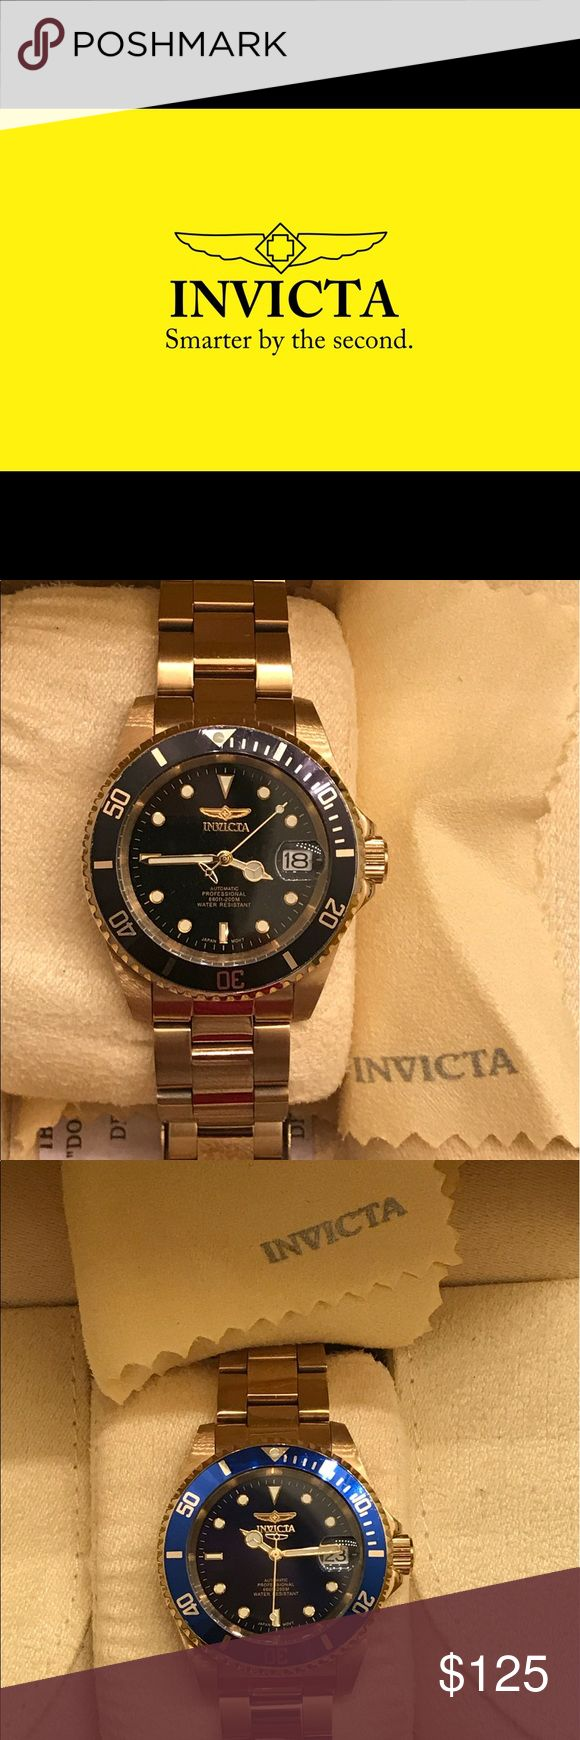 Men Watches Invicta Men Watch Accessories Watches